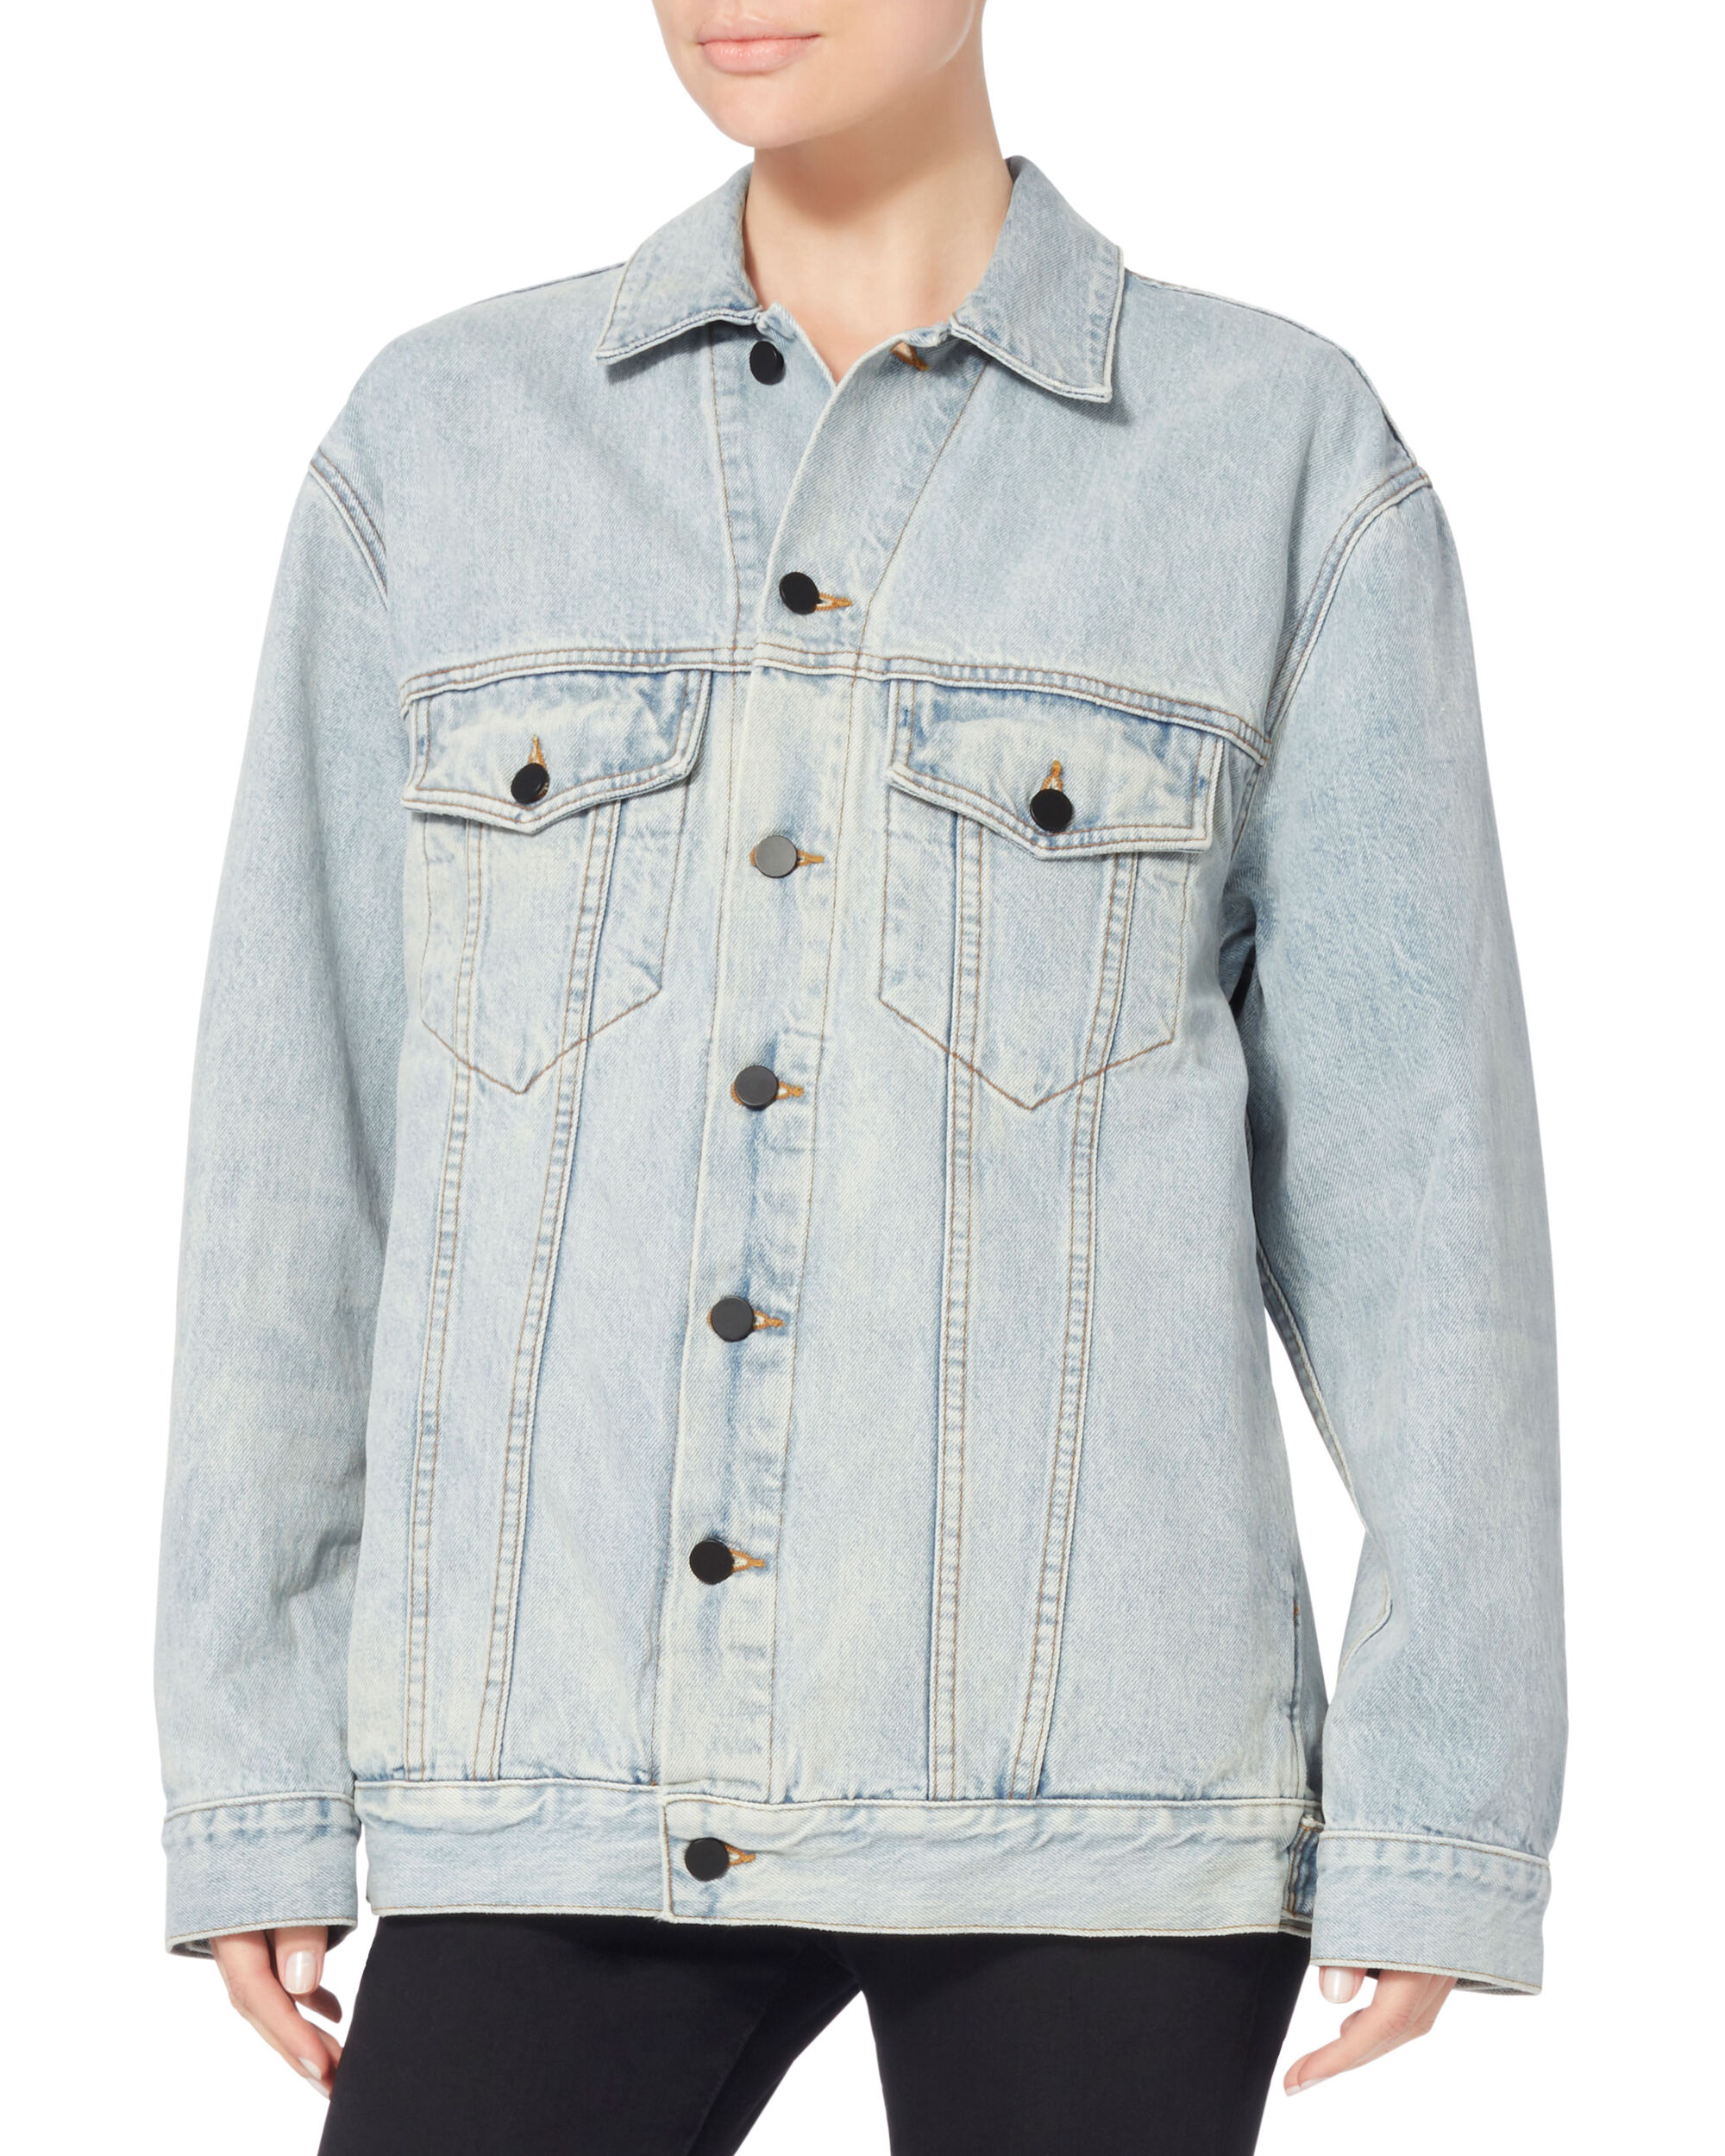 Daze Oversized Denim Jacket, DENIM, hi-res